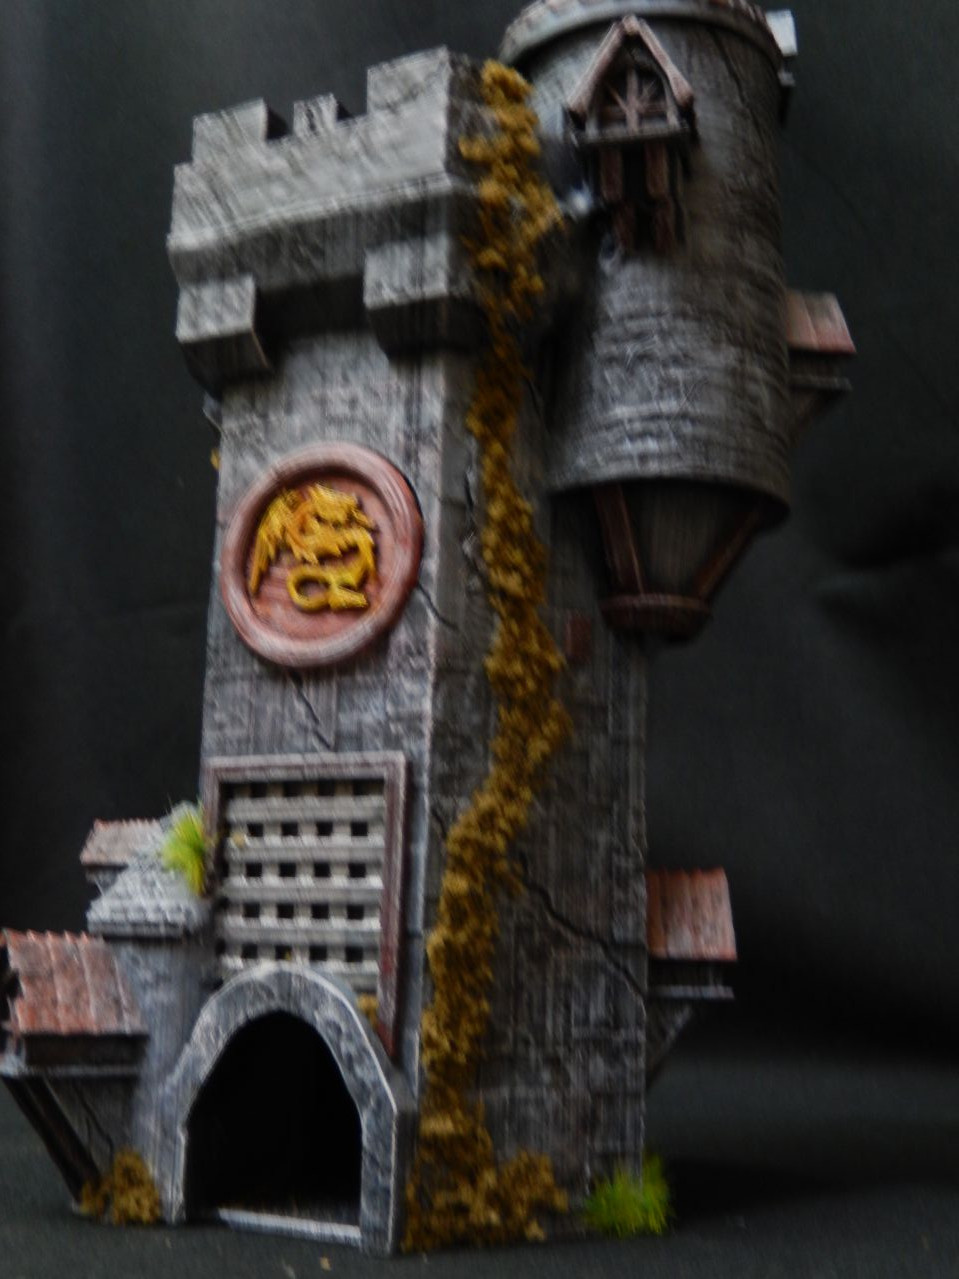 Wizards dice tower with dice storage compartment